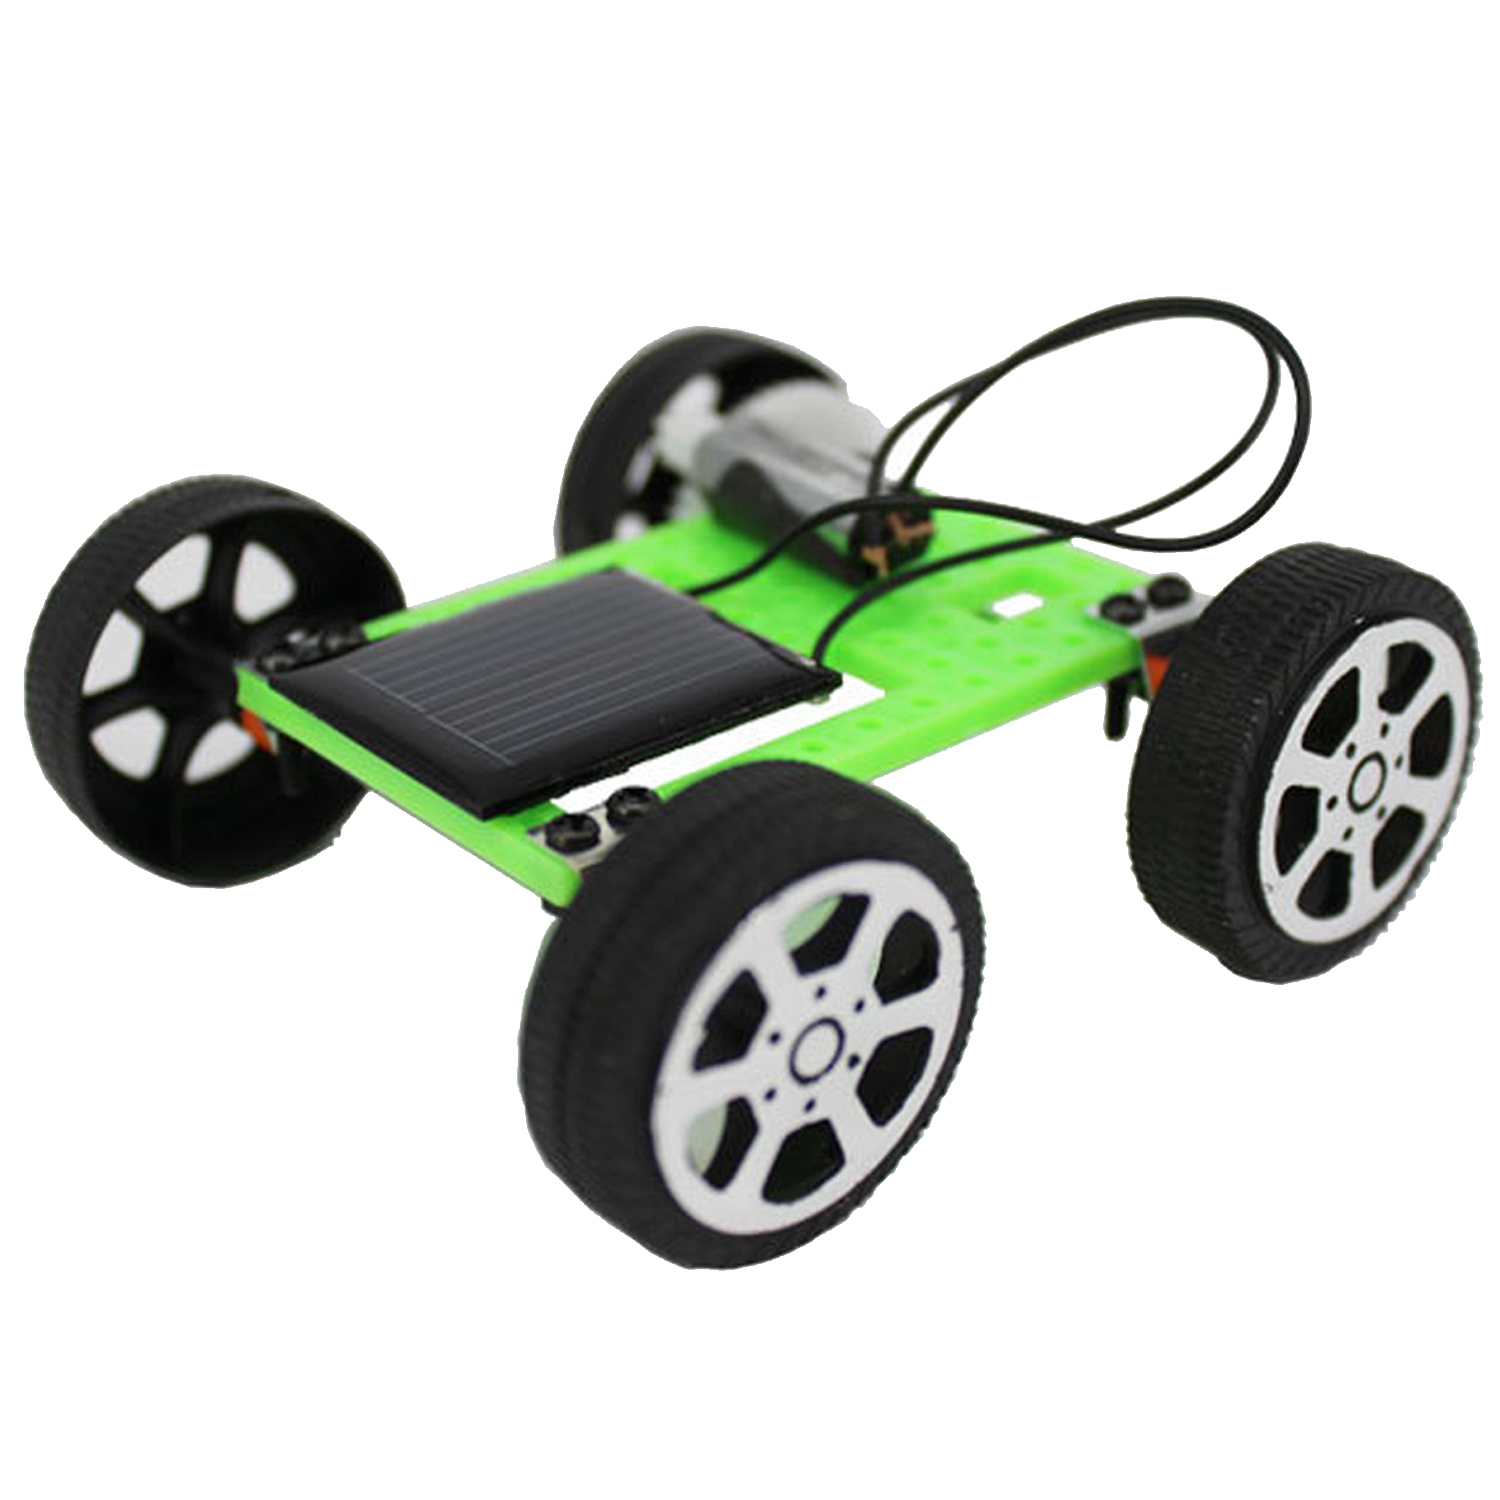 Educational Measuring Worm Robot Climbing Diy For Children Robo Car Android Bluetooth Remote Control Project Using 89c2051 Assemble Mini Solar Energy Crazy Powered Toy Set Science Kit